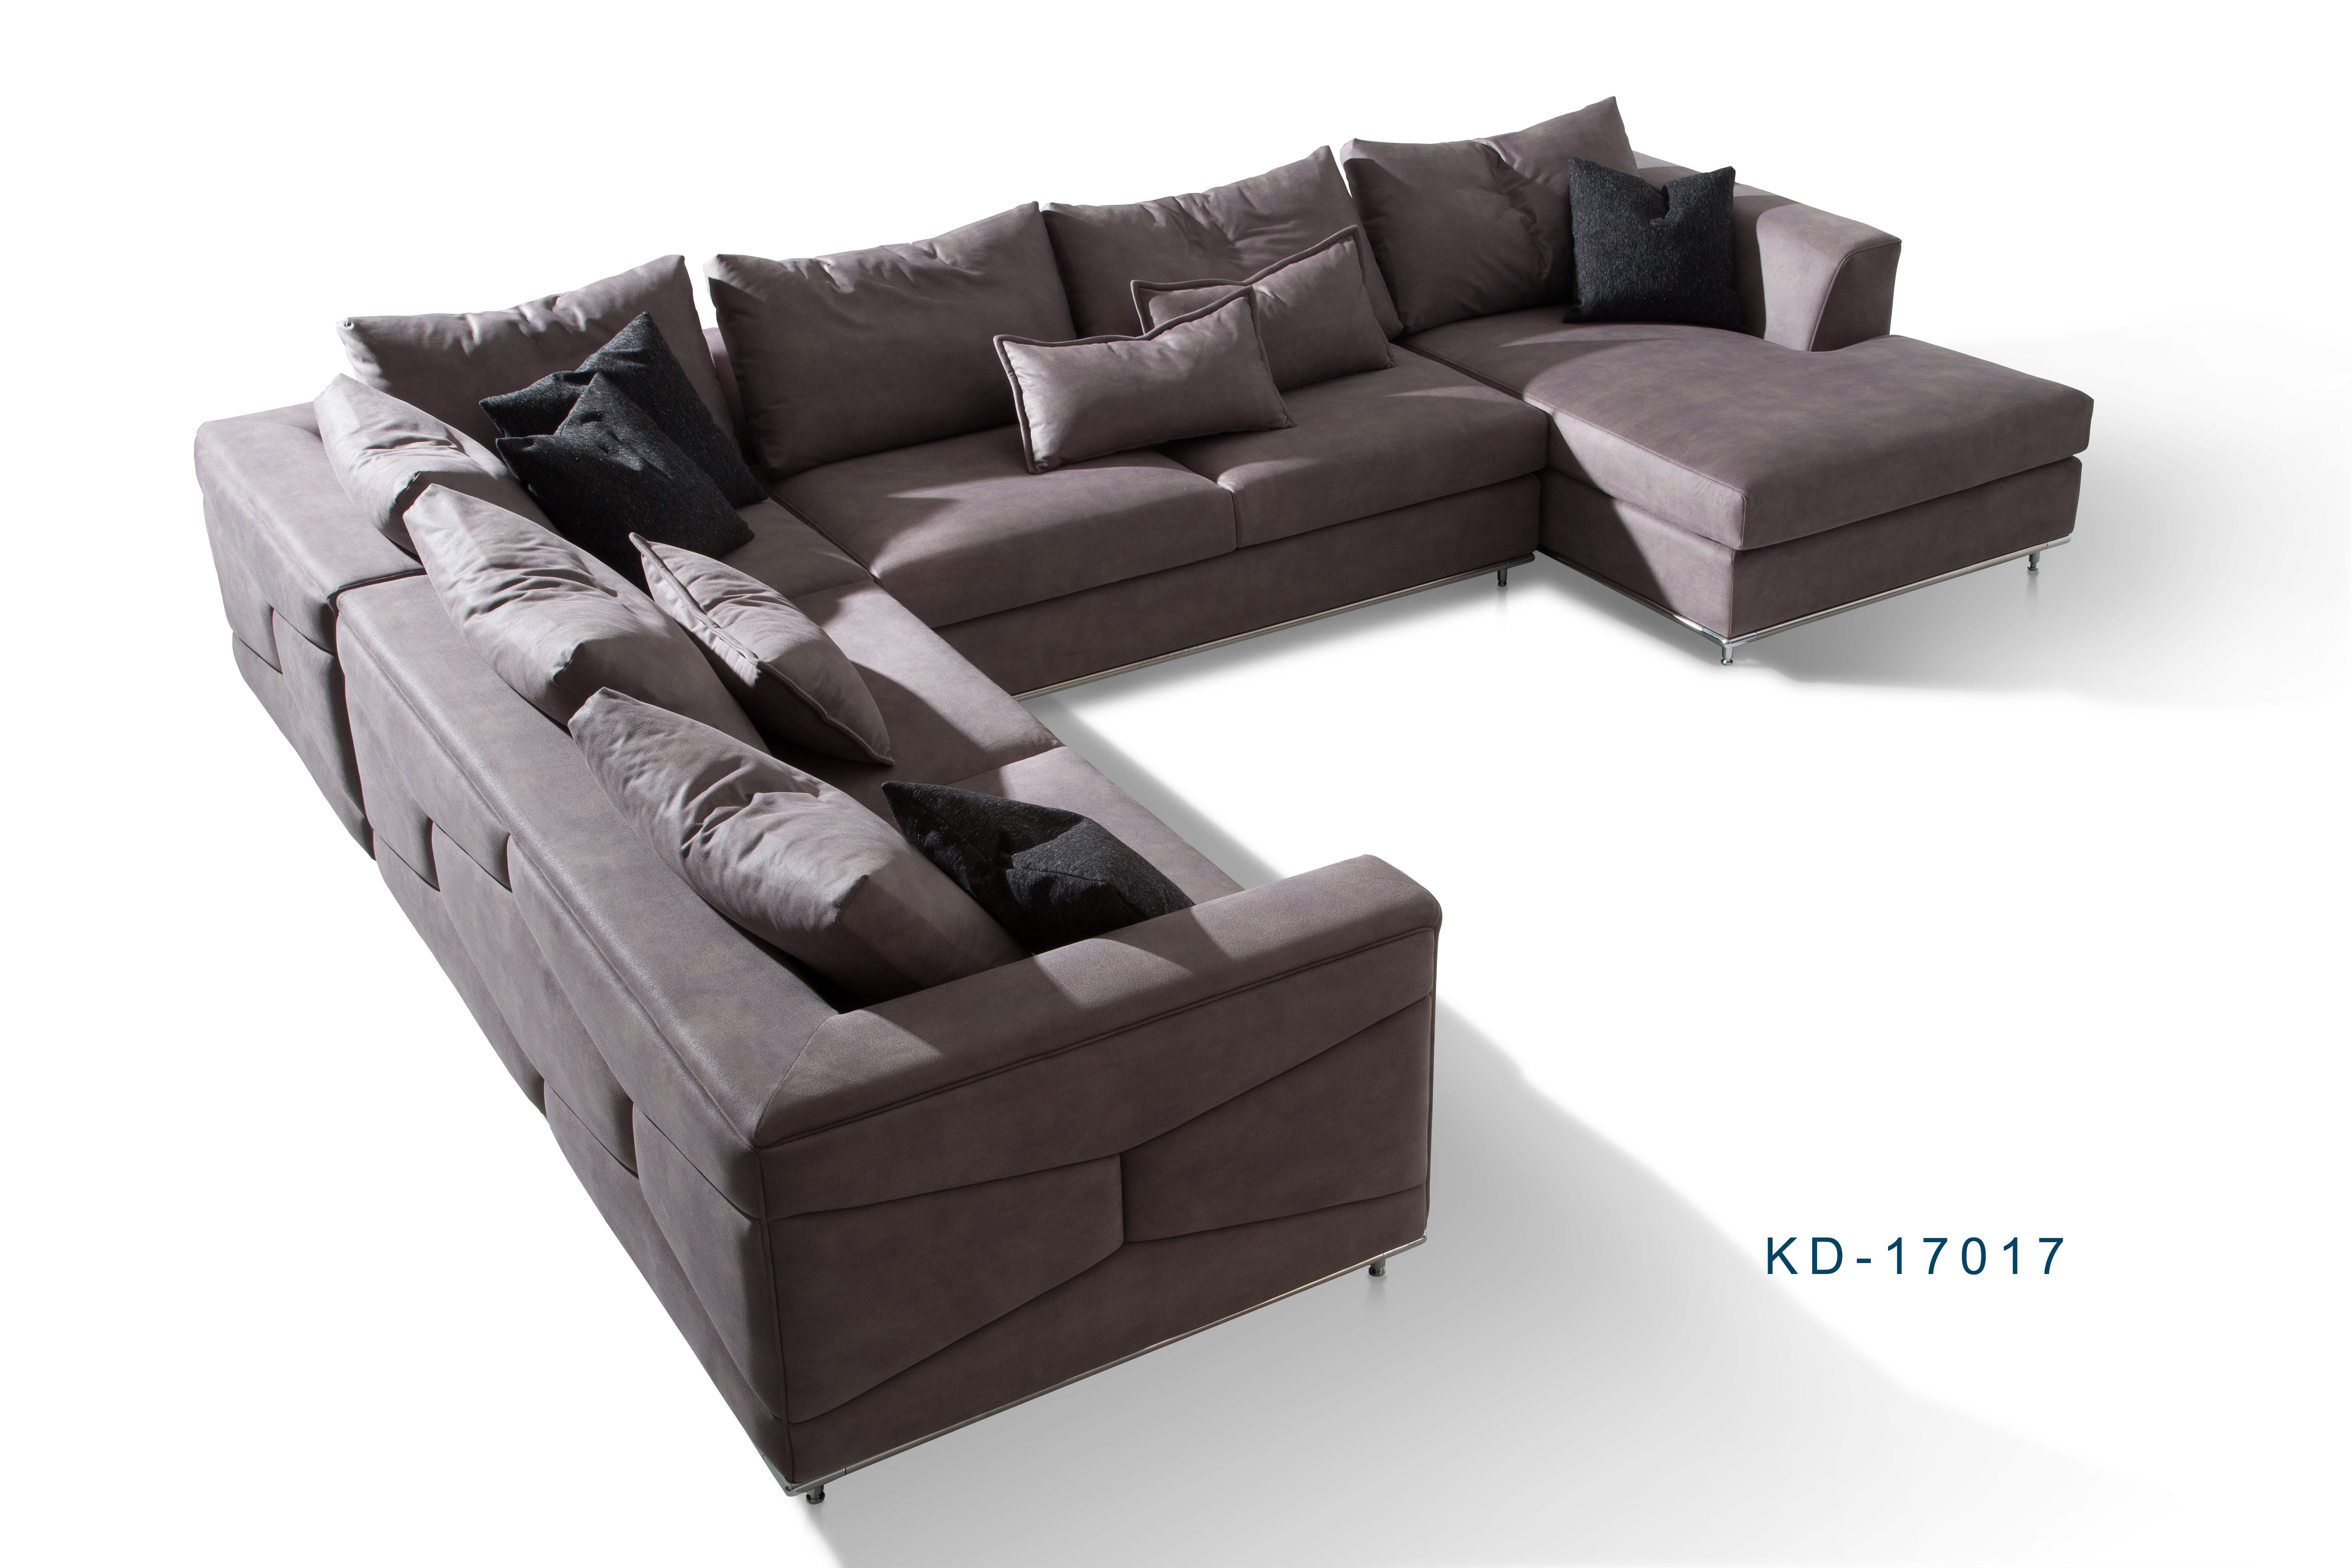 Best Selling In The Year 2017 Sofa Furniture New Furniture Closet Designs